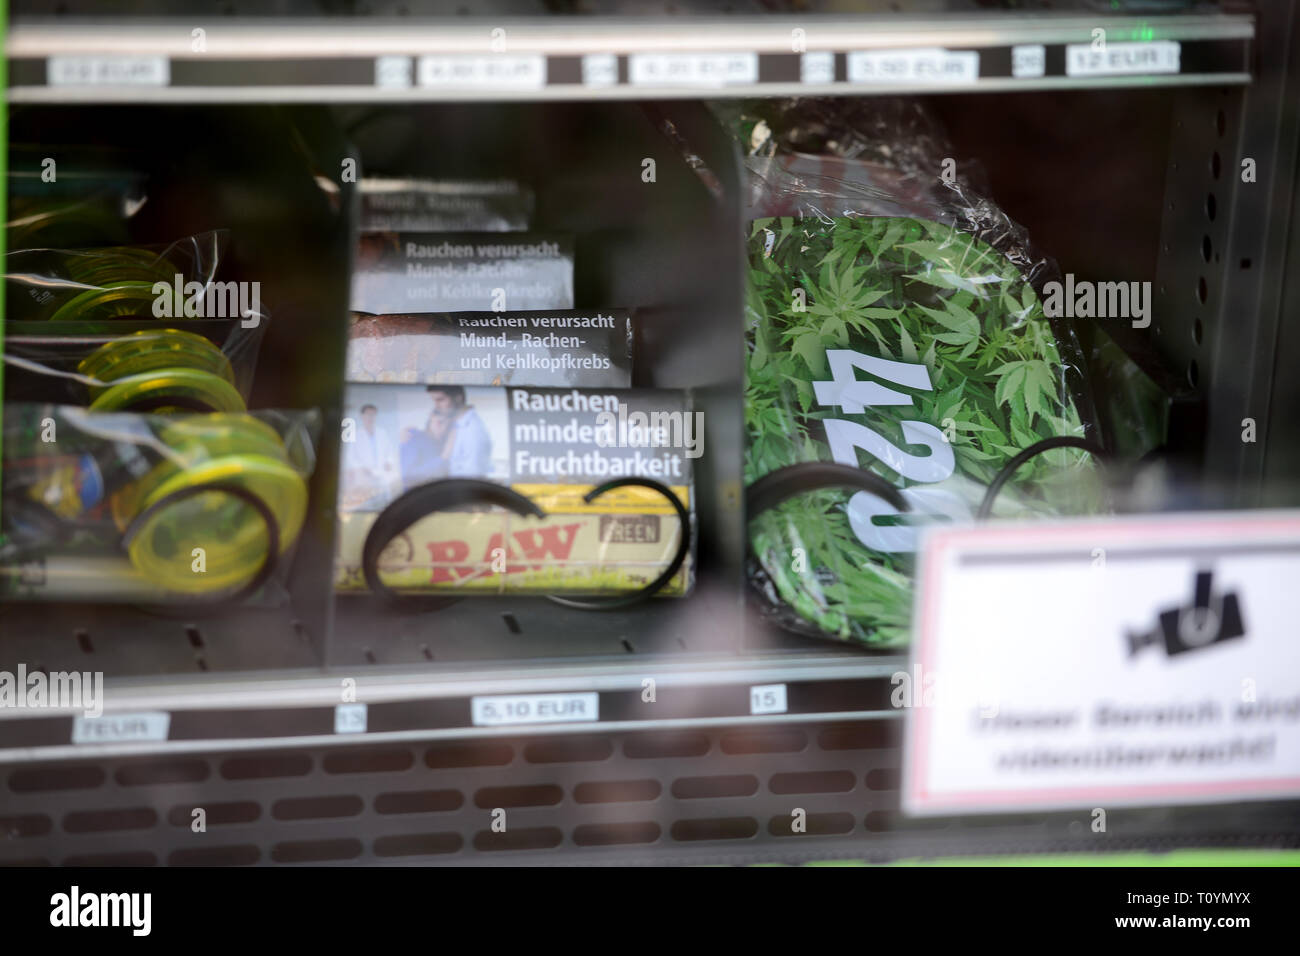 Trier, Germany. 21st Mar, 2019. Pressed and dried cannabis flowers in sachets as well as extract beads in plastic boxes plus all kinds of smoking accessories are available for purchase in a cannabis vending machine. These are hemp products with the active substance CBD (cannabidiol), which is considered to be hardly psychoactive. Credit: Harald Tittel/dpa/Alamy Live News Stock Photo